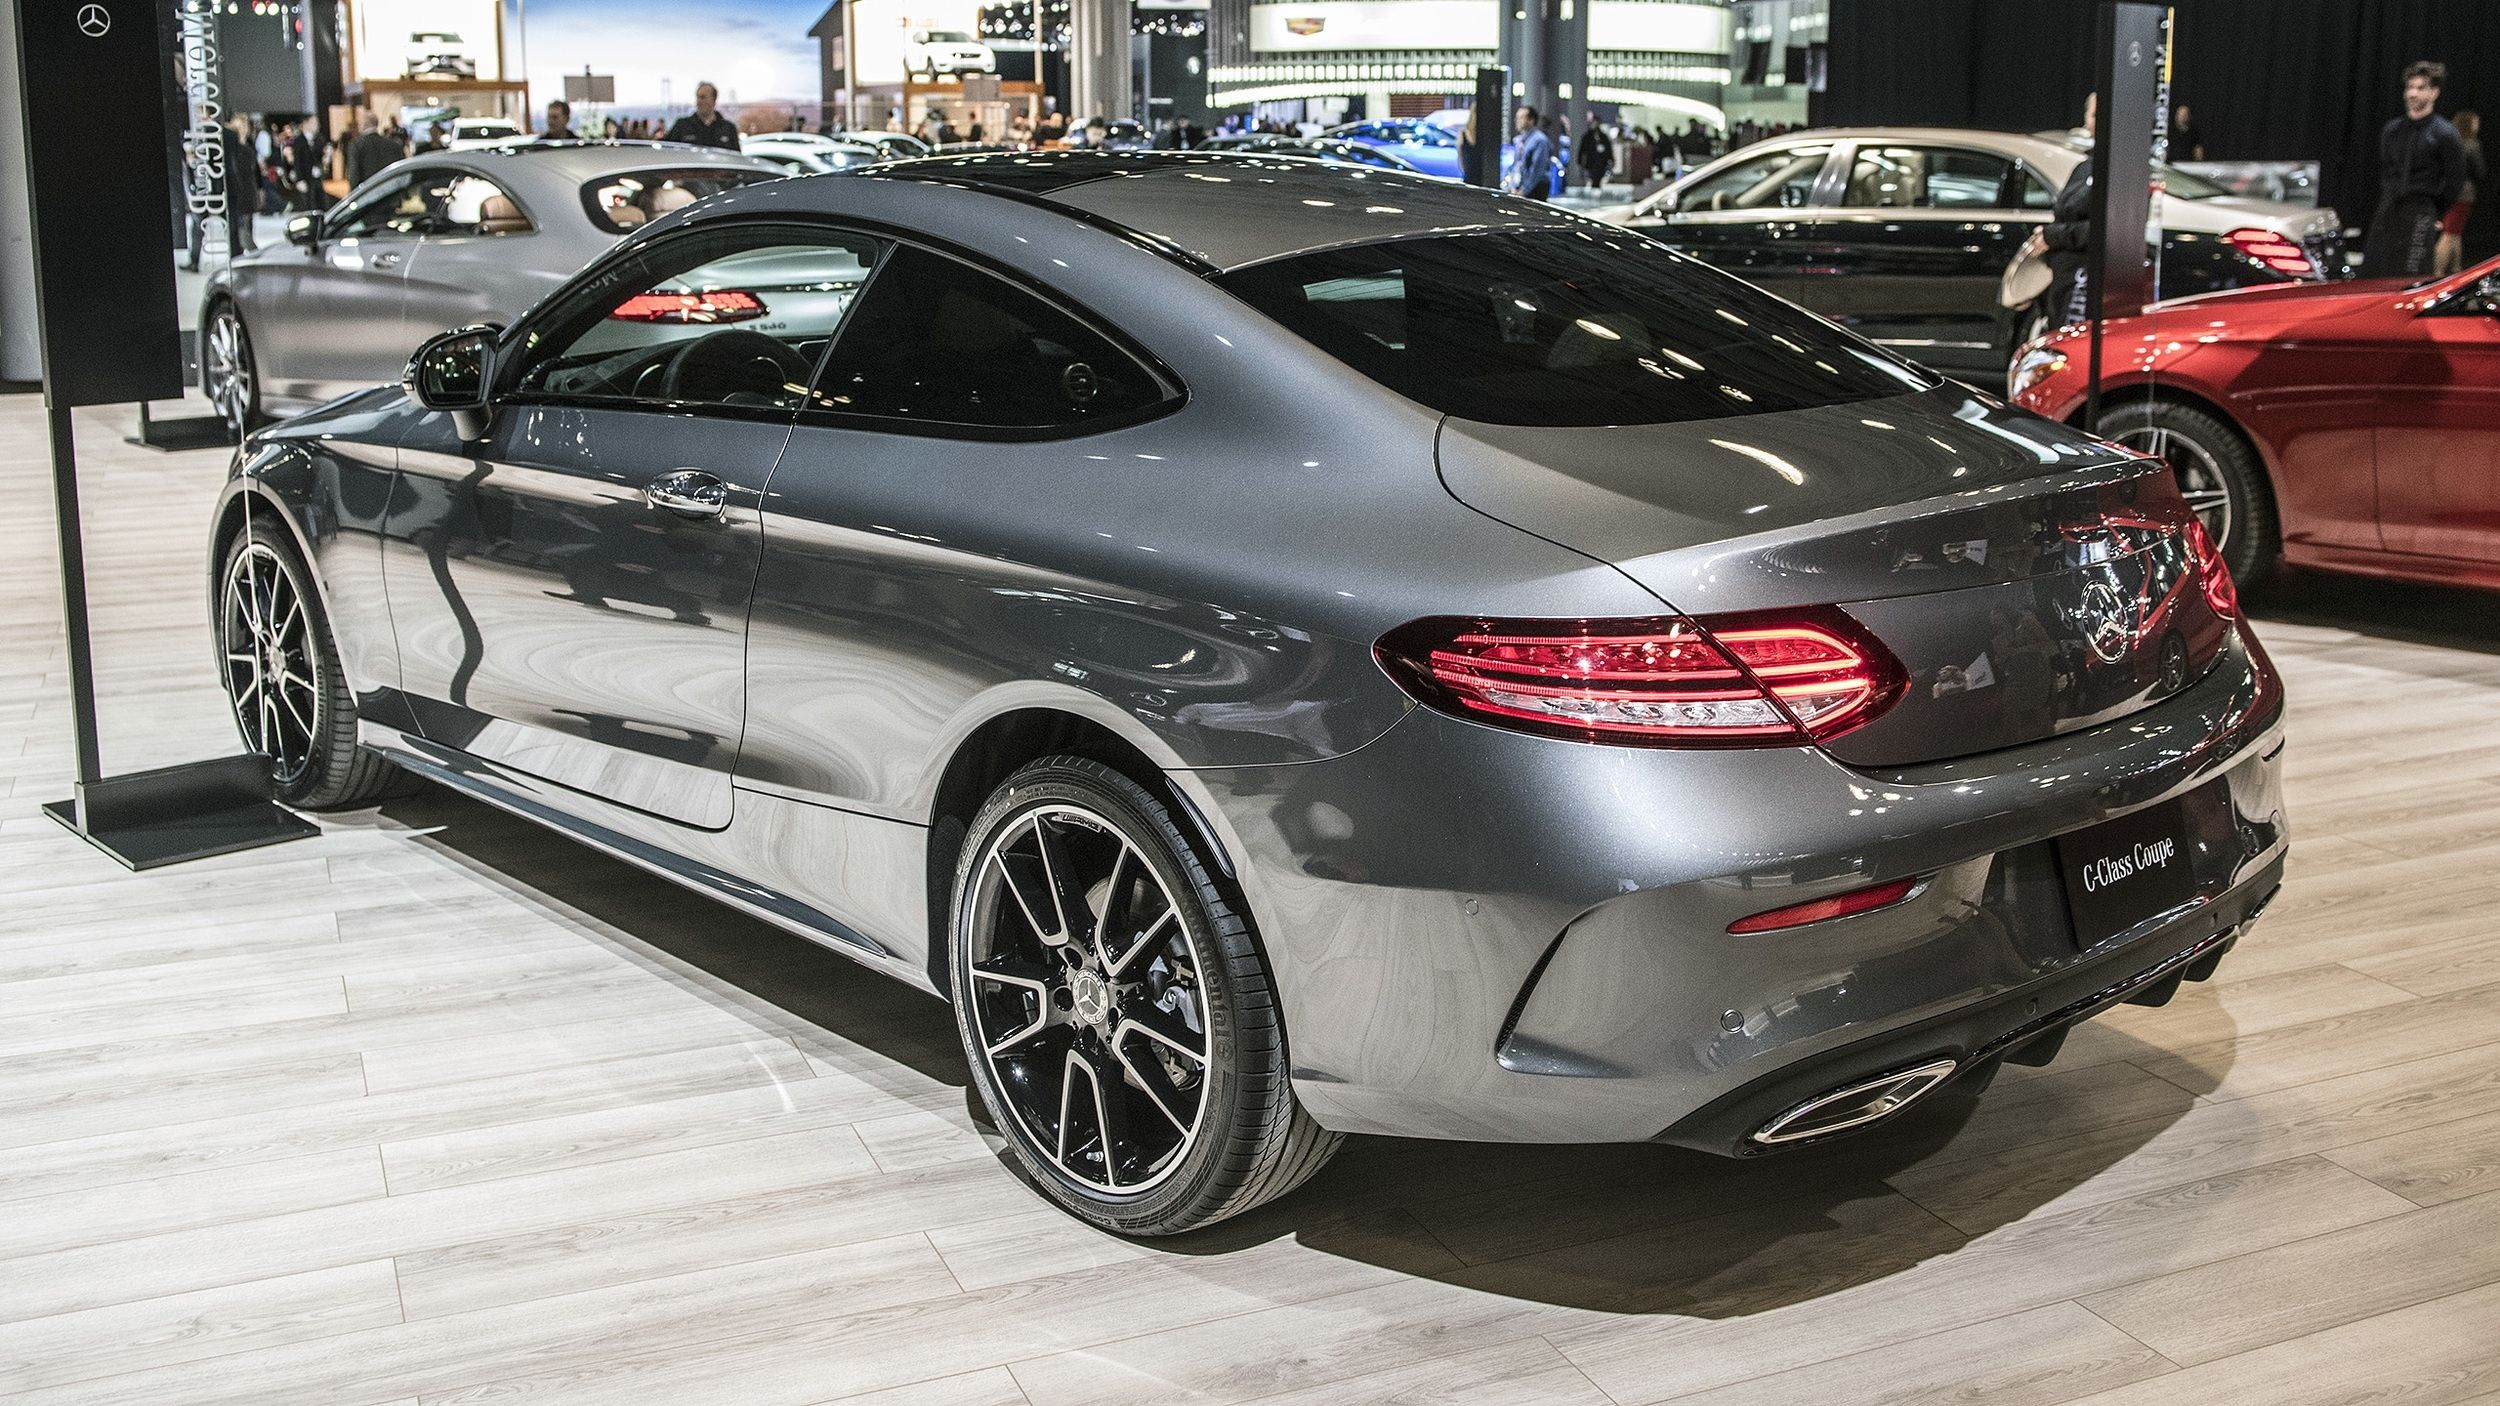 Mercedes C Class Coupe >> Best Mercedes C Class Coupe 2019 Facelift Specs And Review